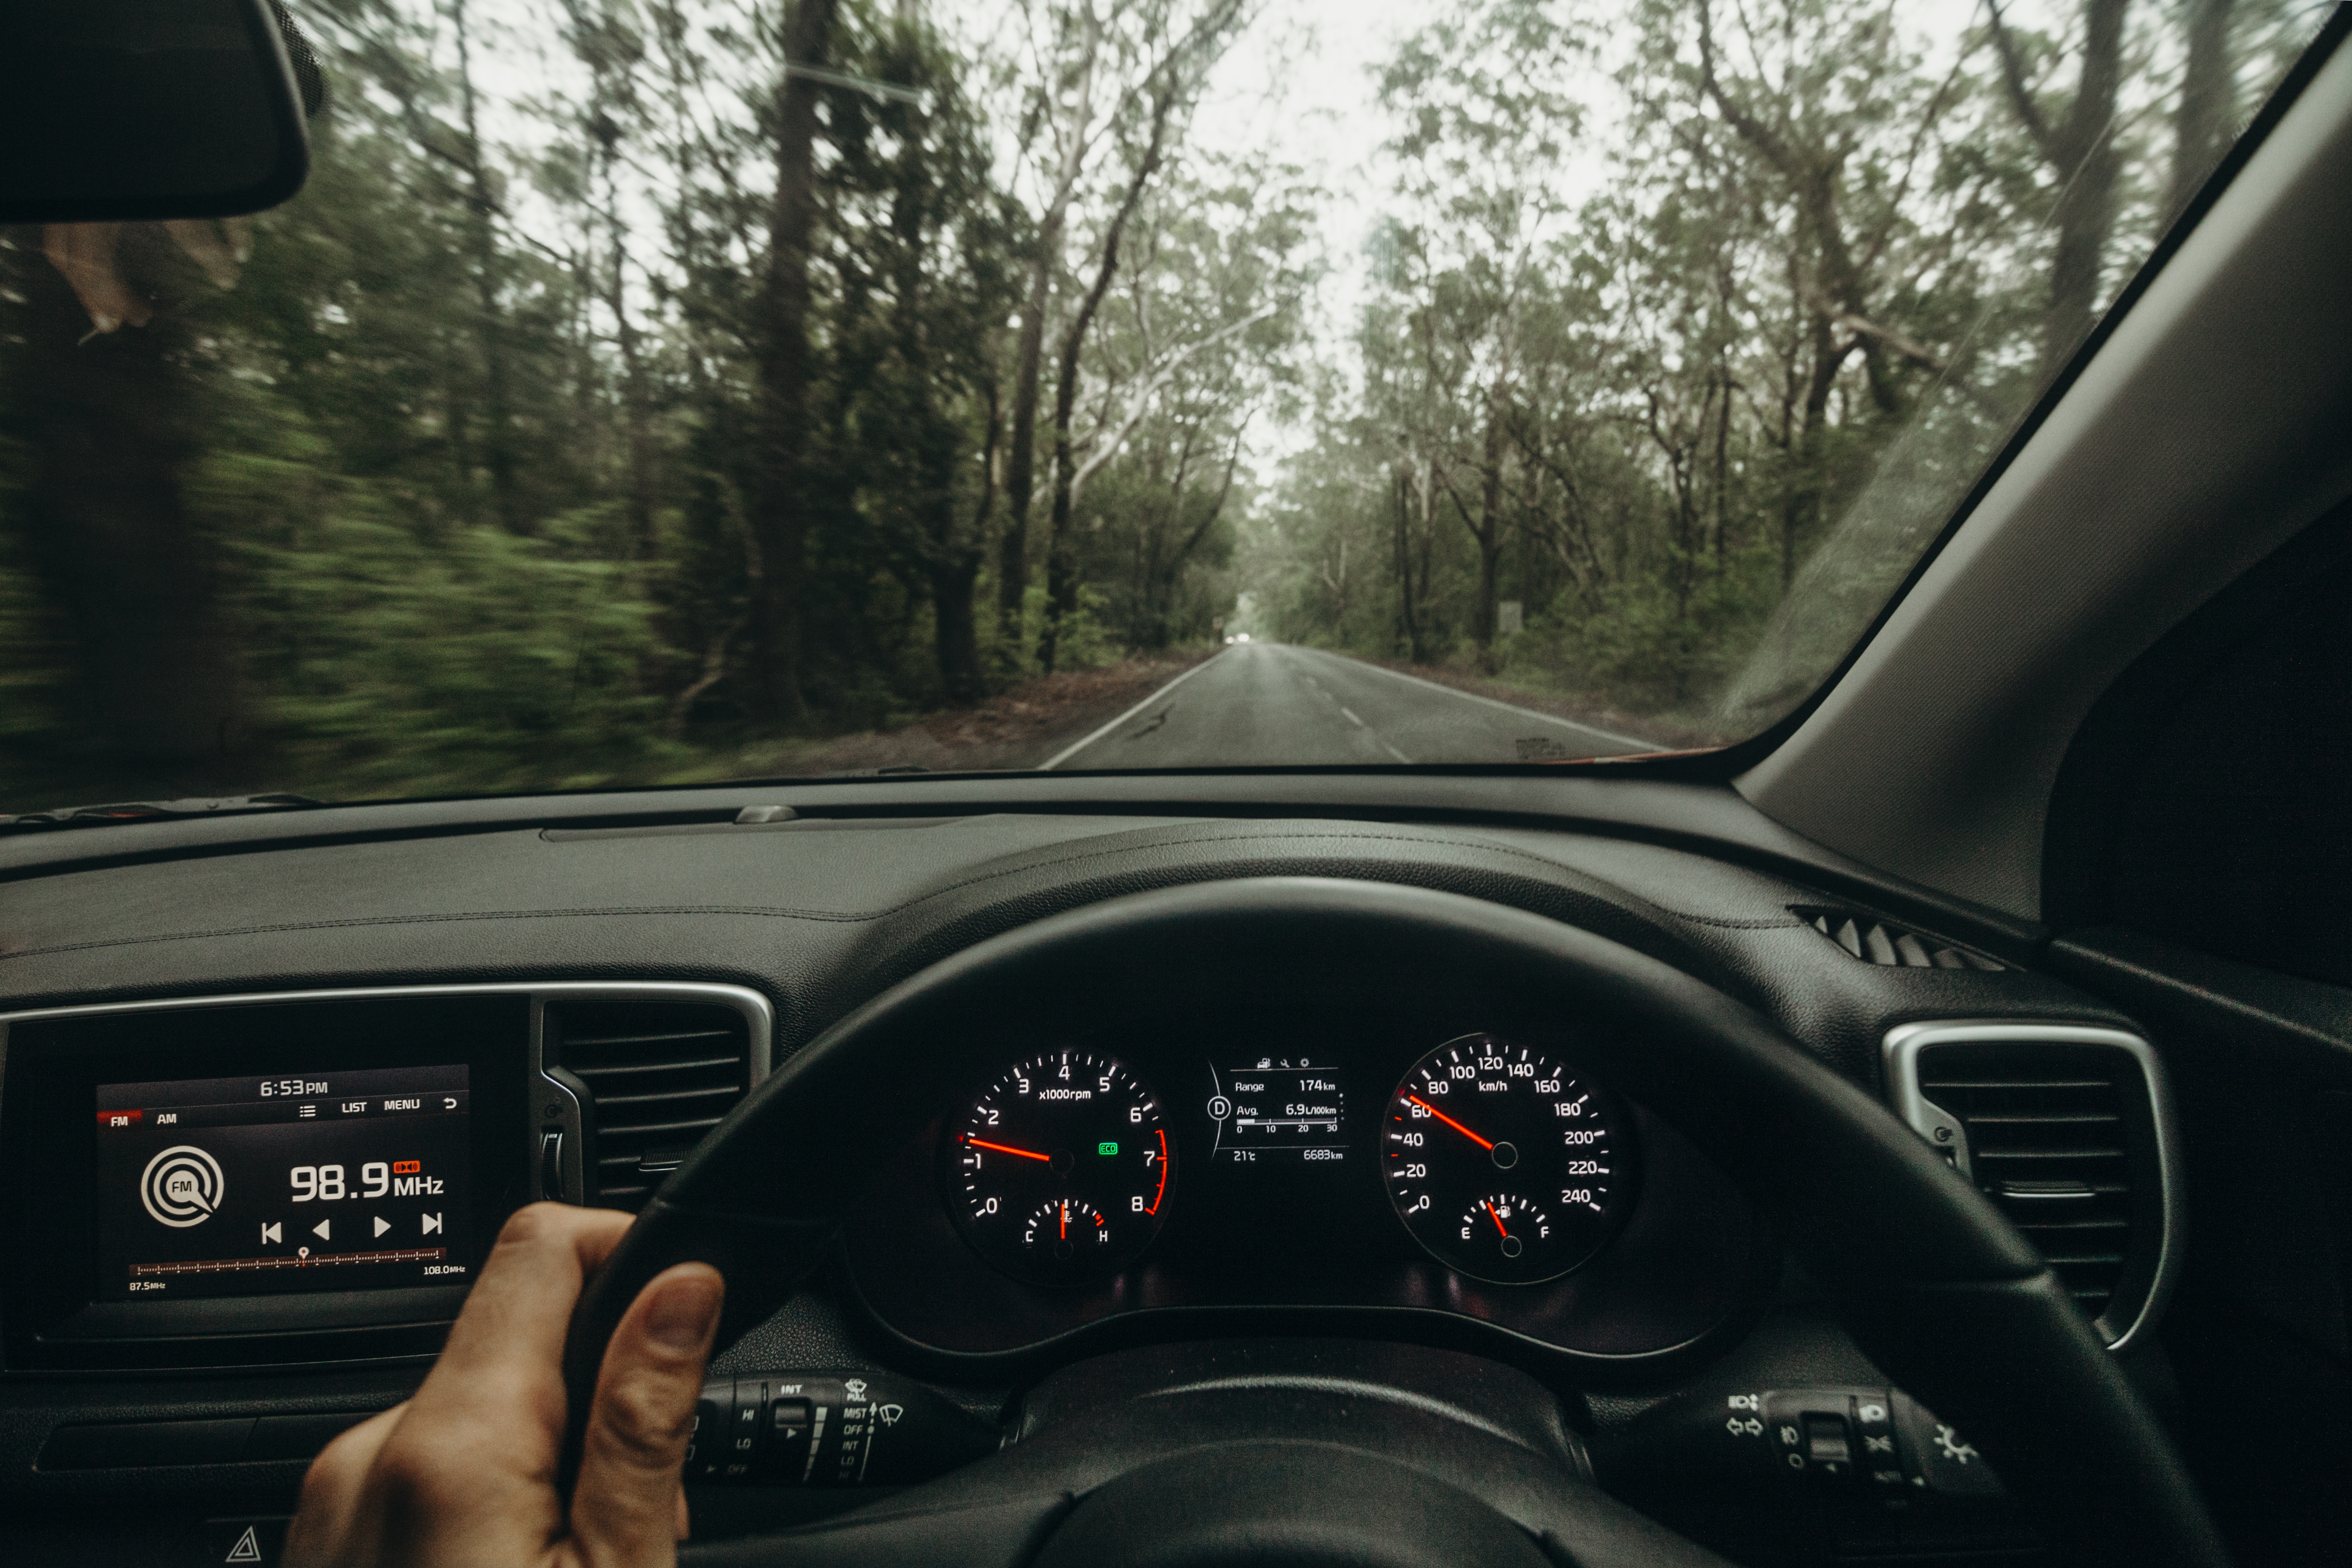 Inside view of car steering wheel while driving across Australia